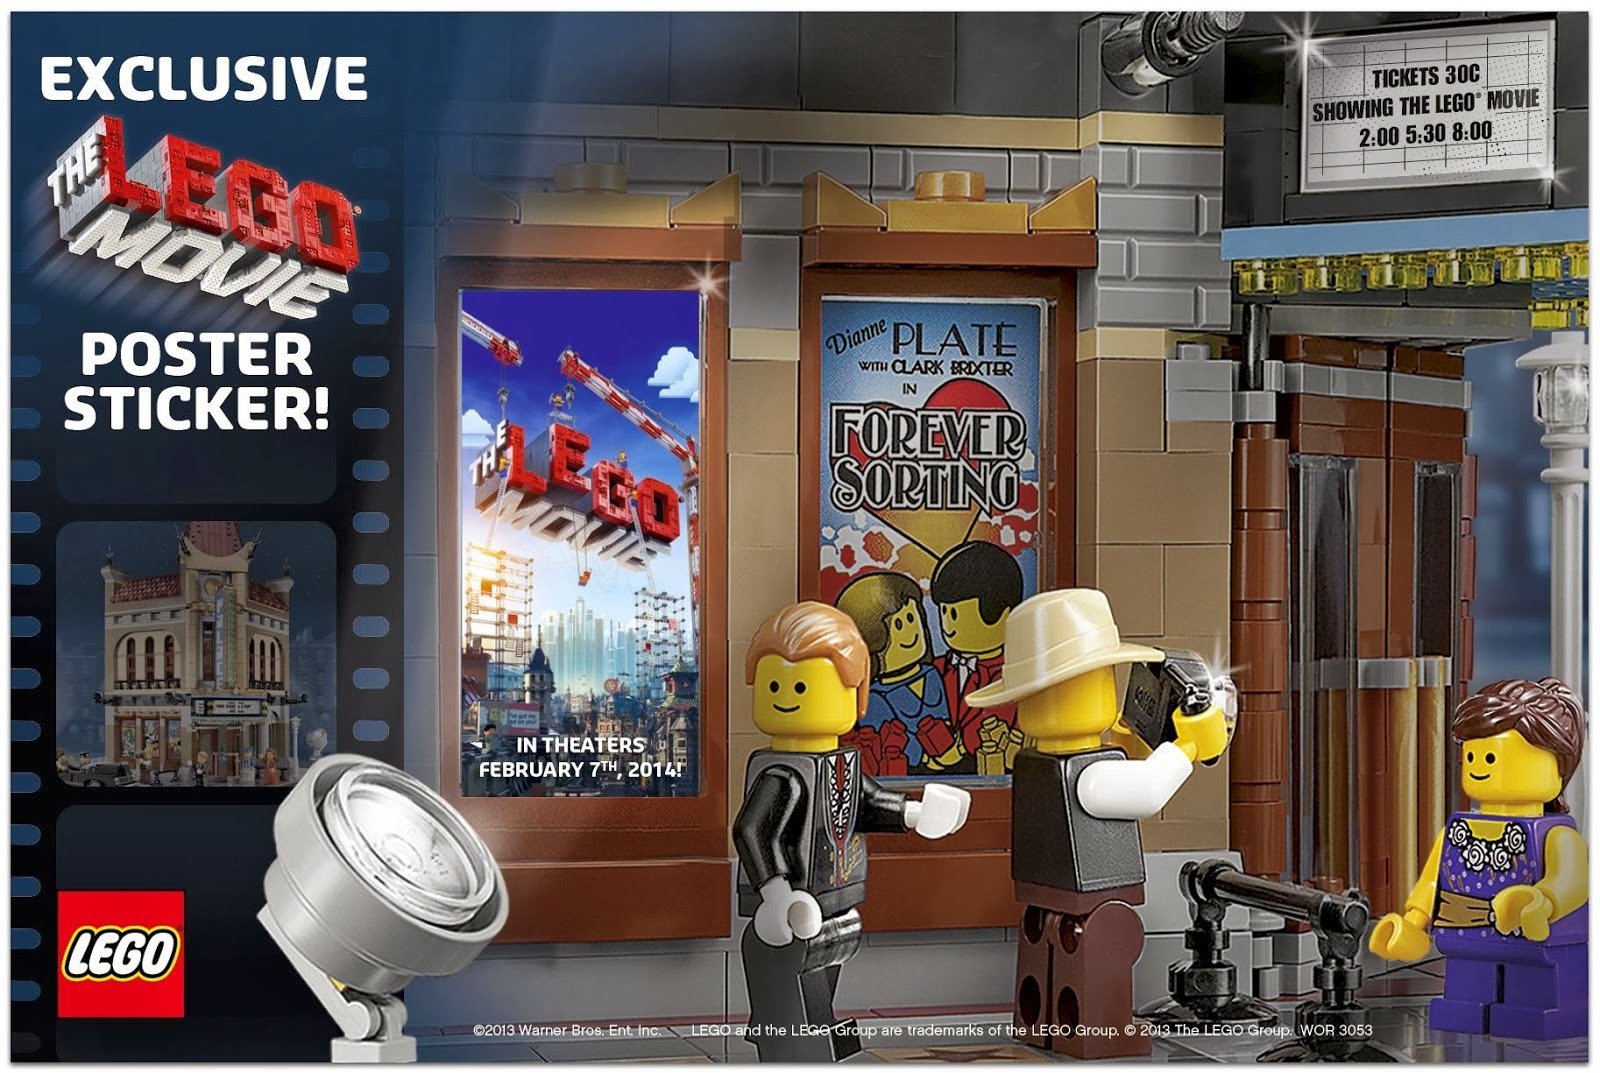 KUMPULAN GAMBAR FILM THE LEGO TERBARU Foto Kartun The Lego Movie